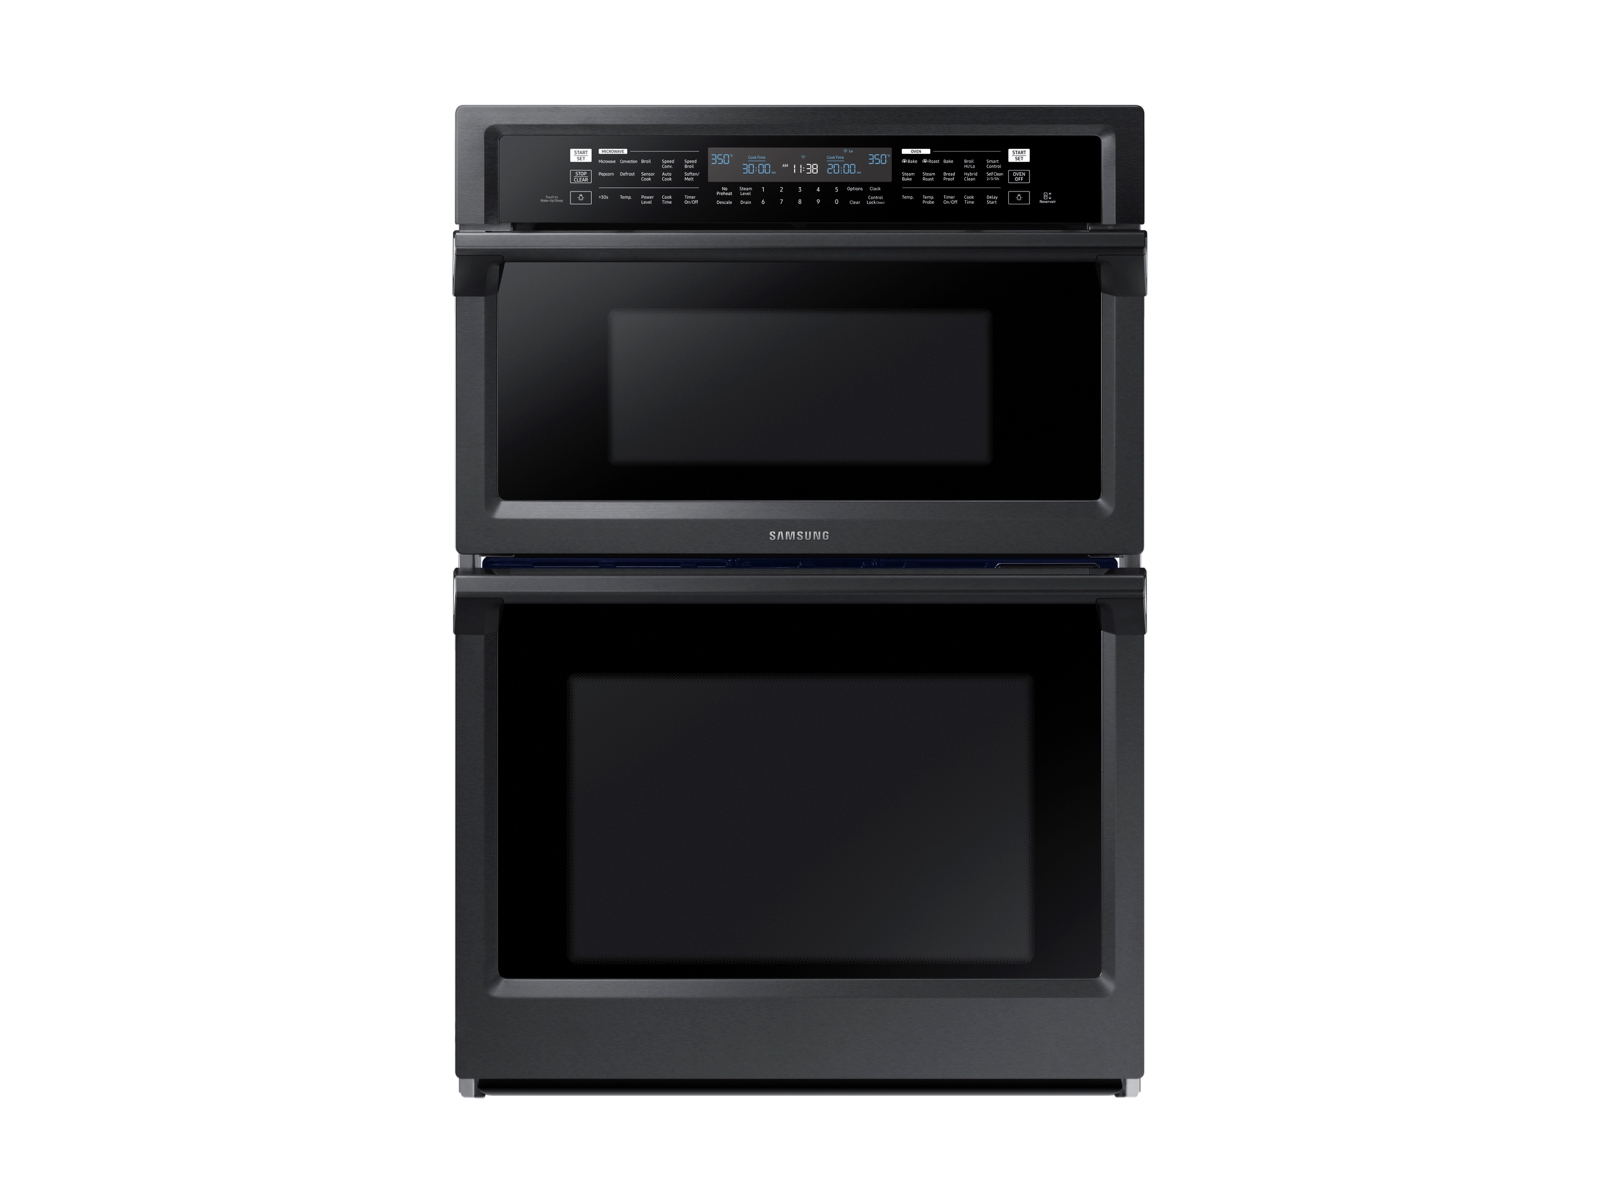 30 smart microwave combination wall oven with steam cook in black stainless steel